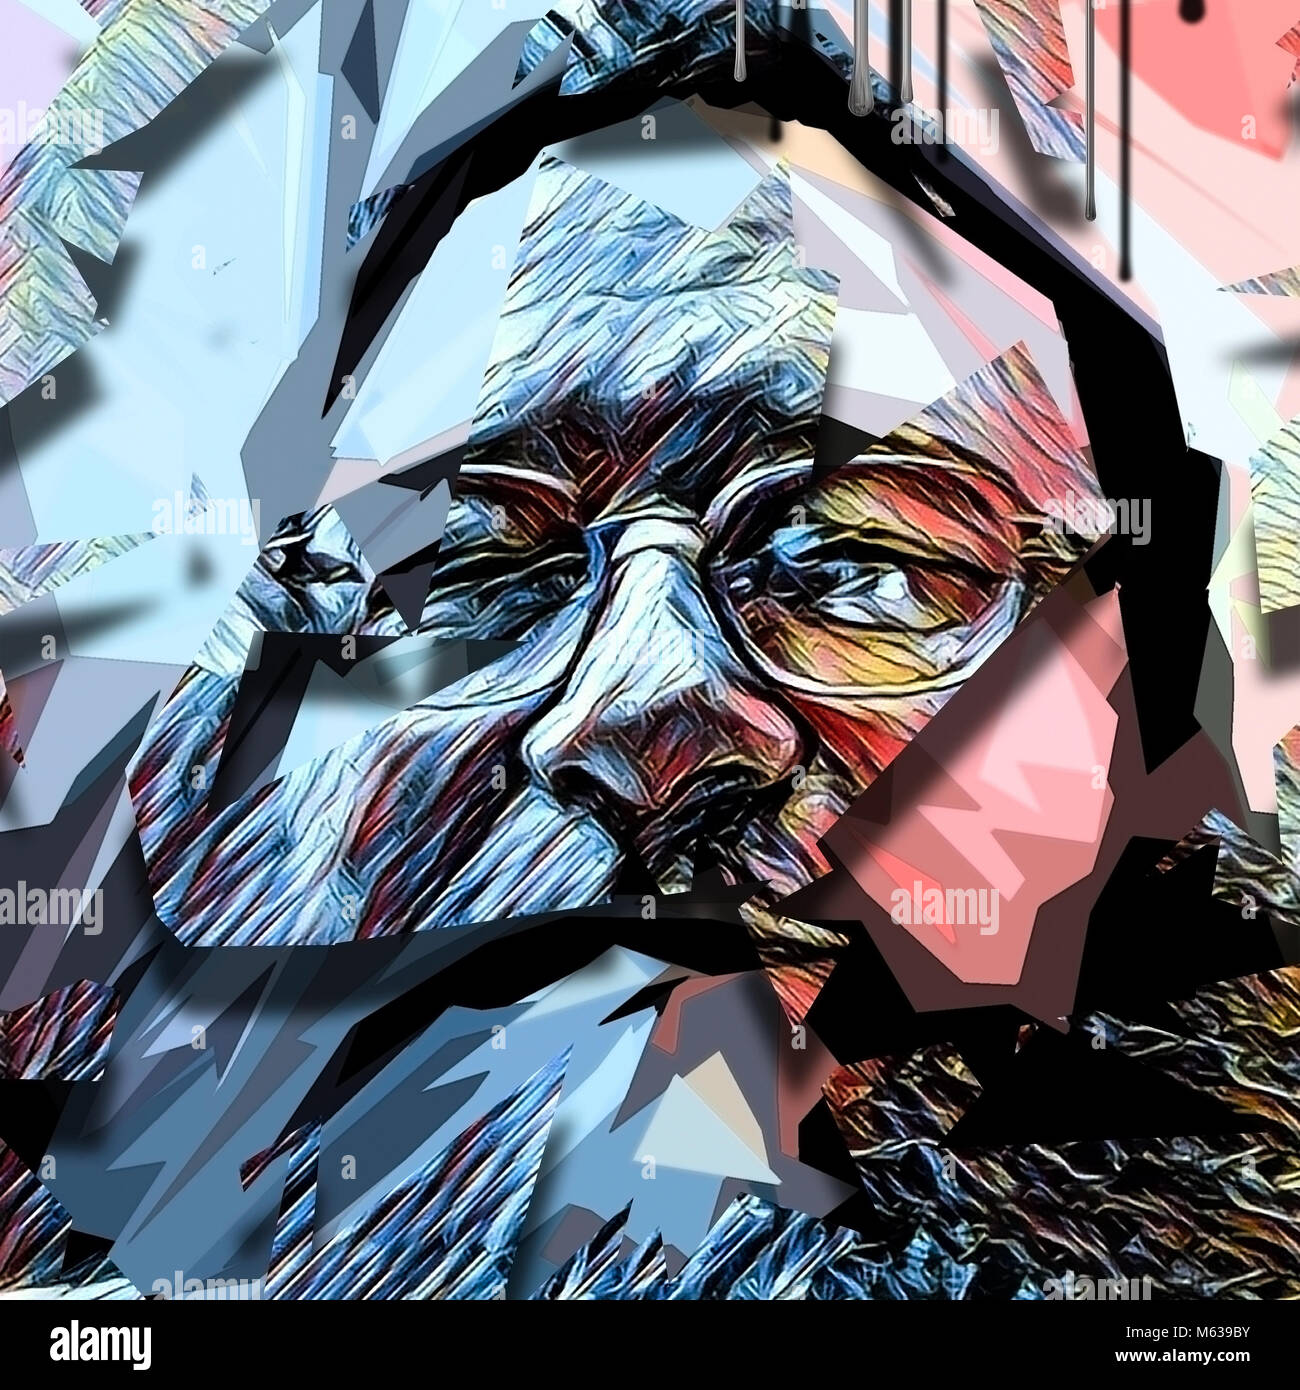 Abstract Painting Old Man S Face In Glasses Stock Photo